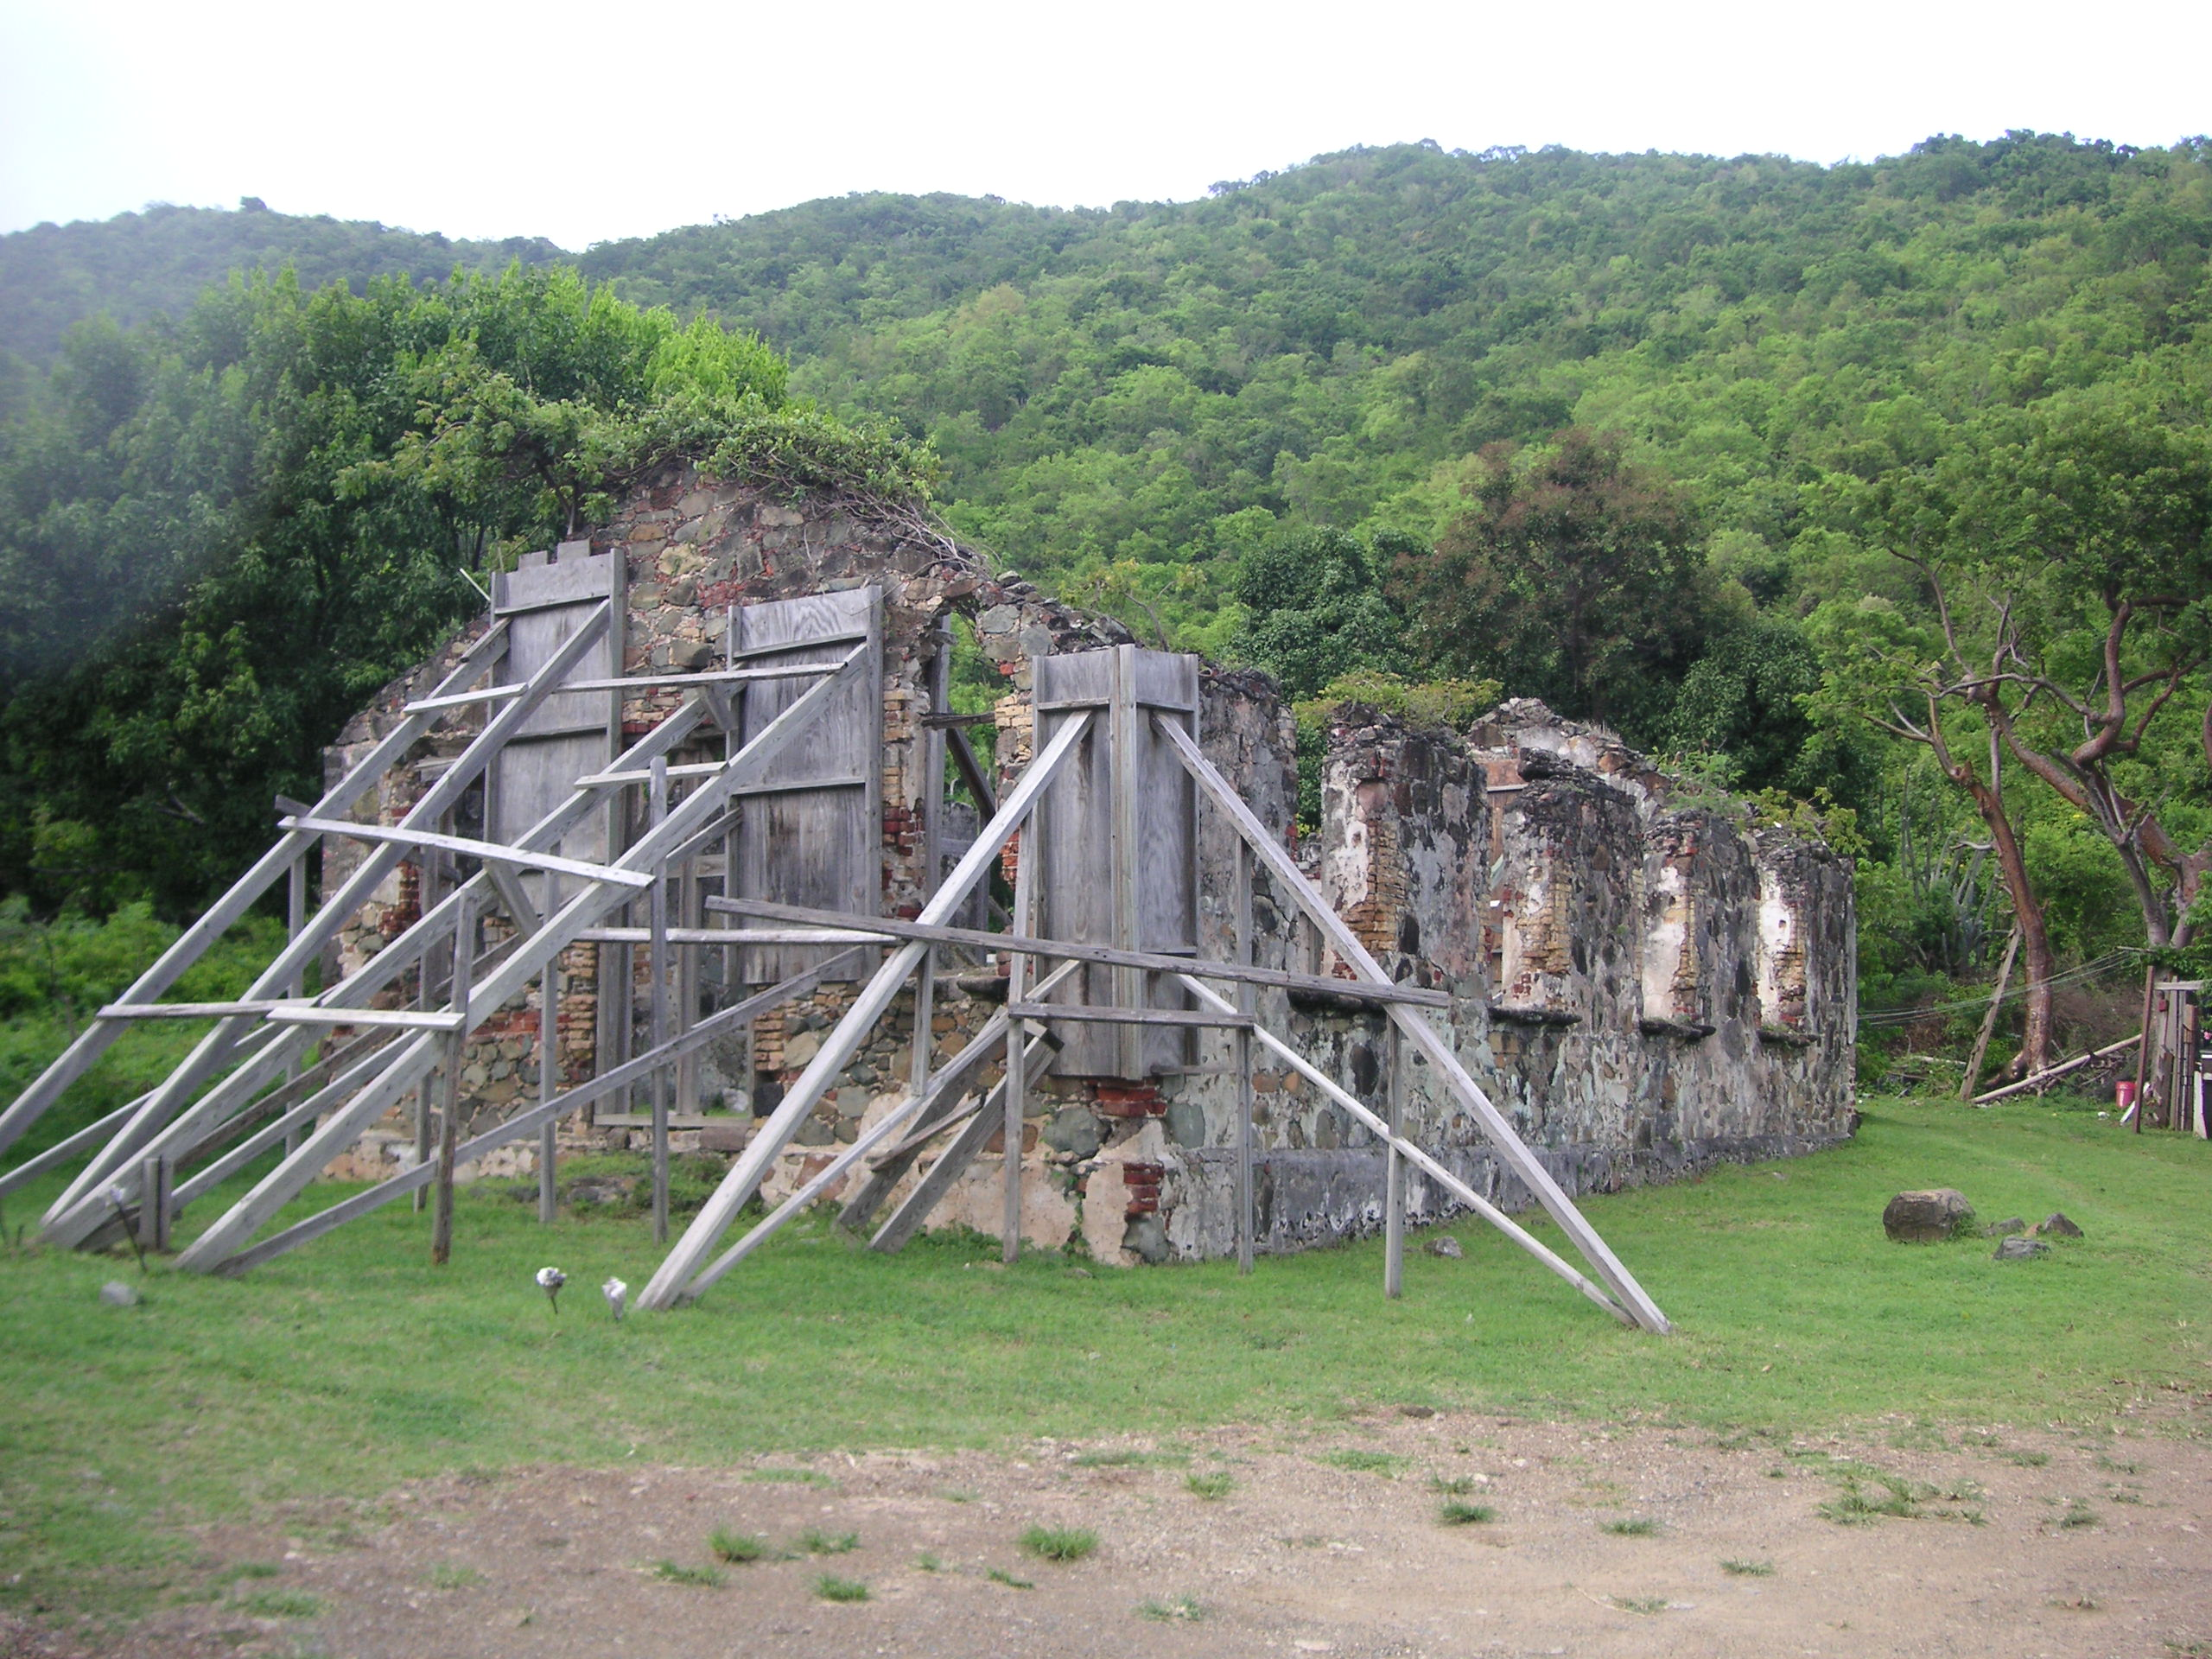 St Phillip's Church, Kingston, Tortola, British Virgin Island, one of the most important historical ruins in the territory.. Photograph taken by Colin Riegels, August 8, 2006.